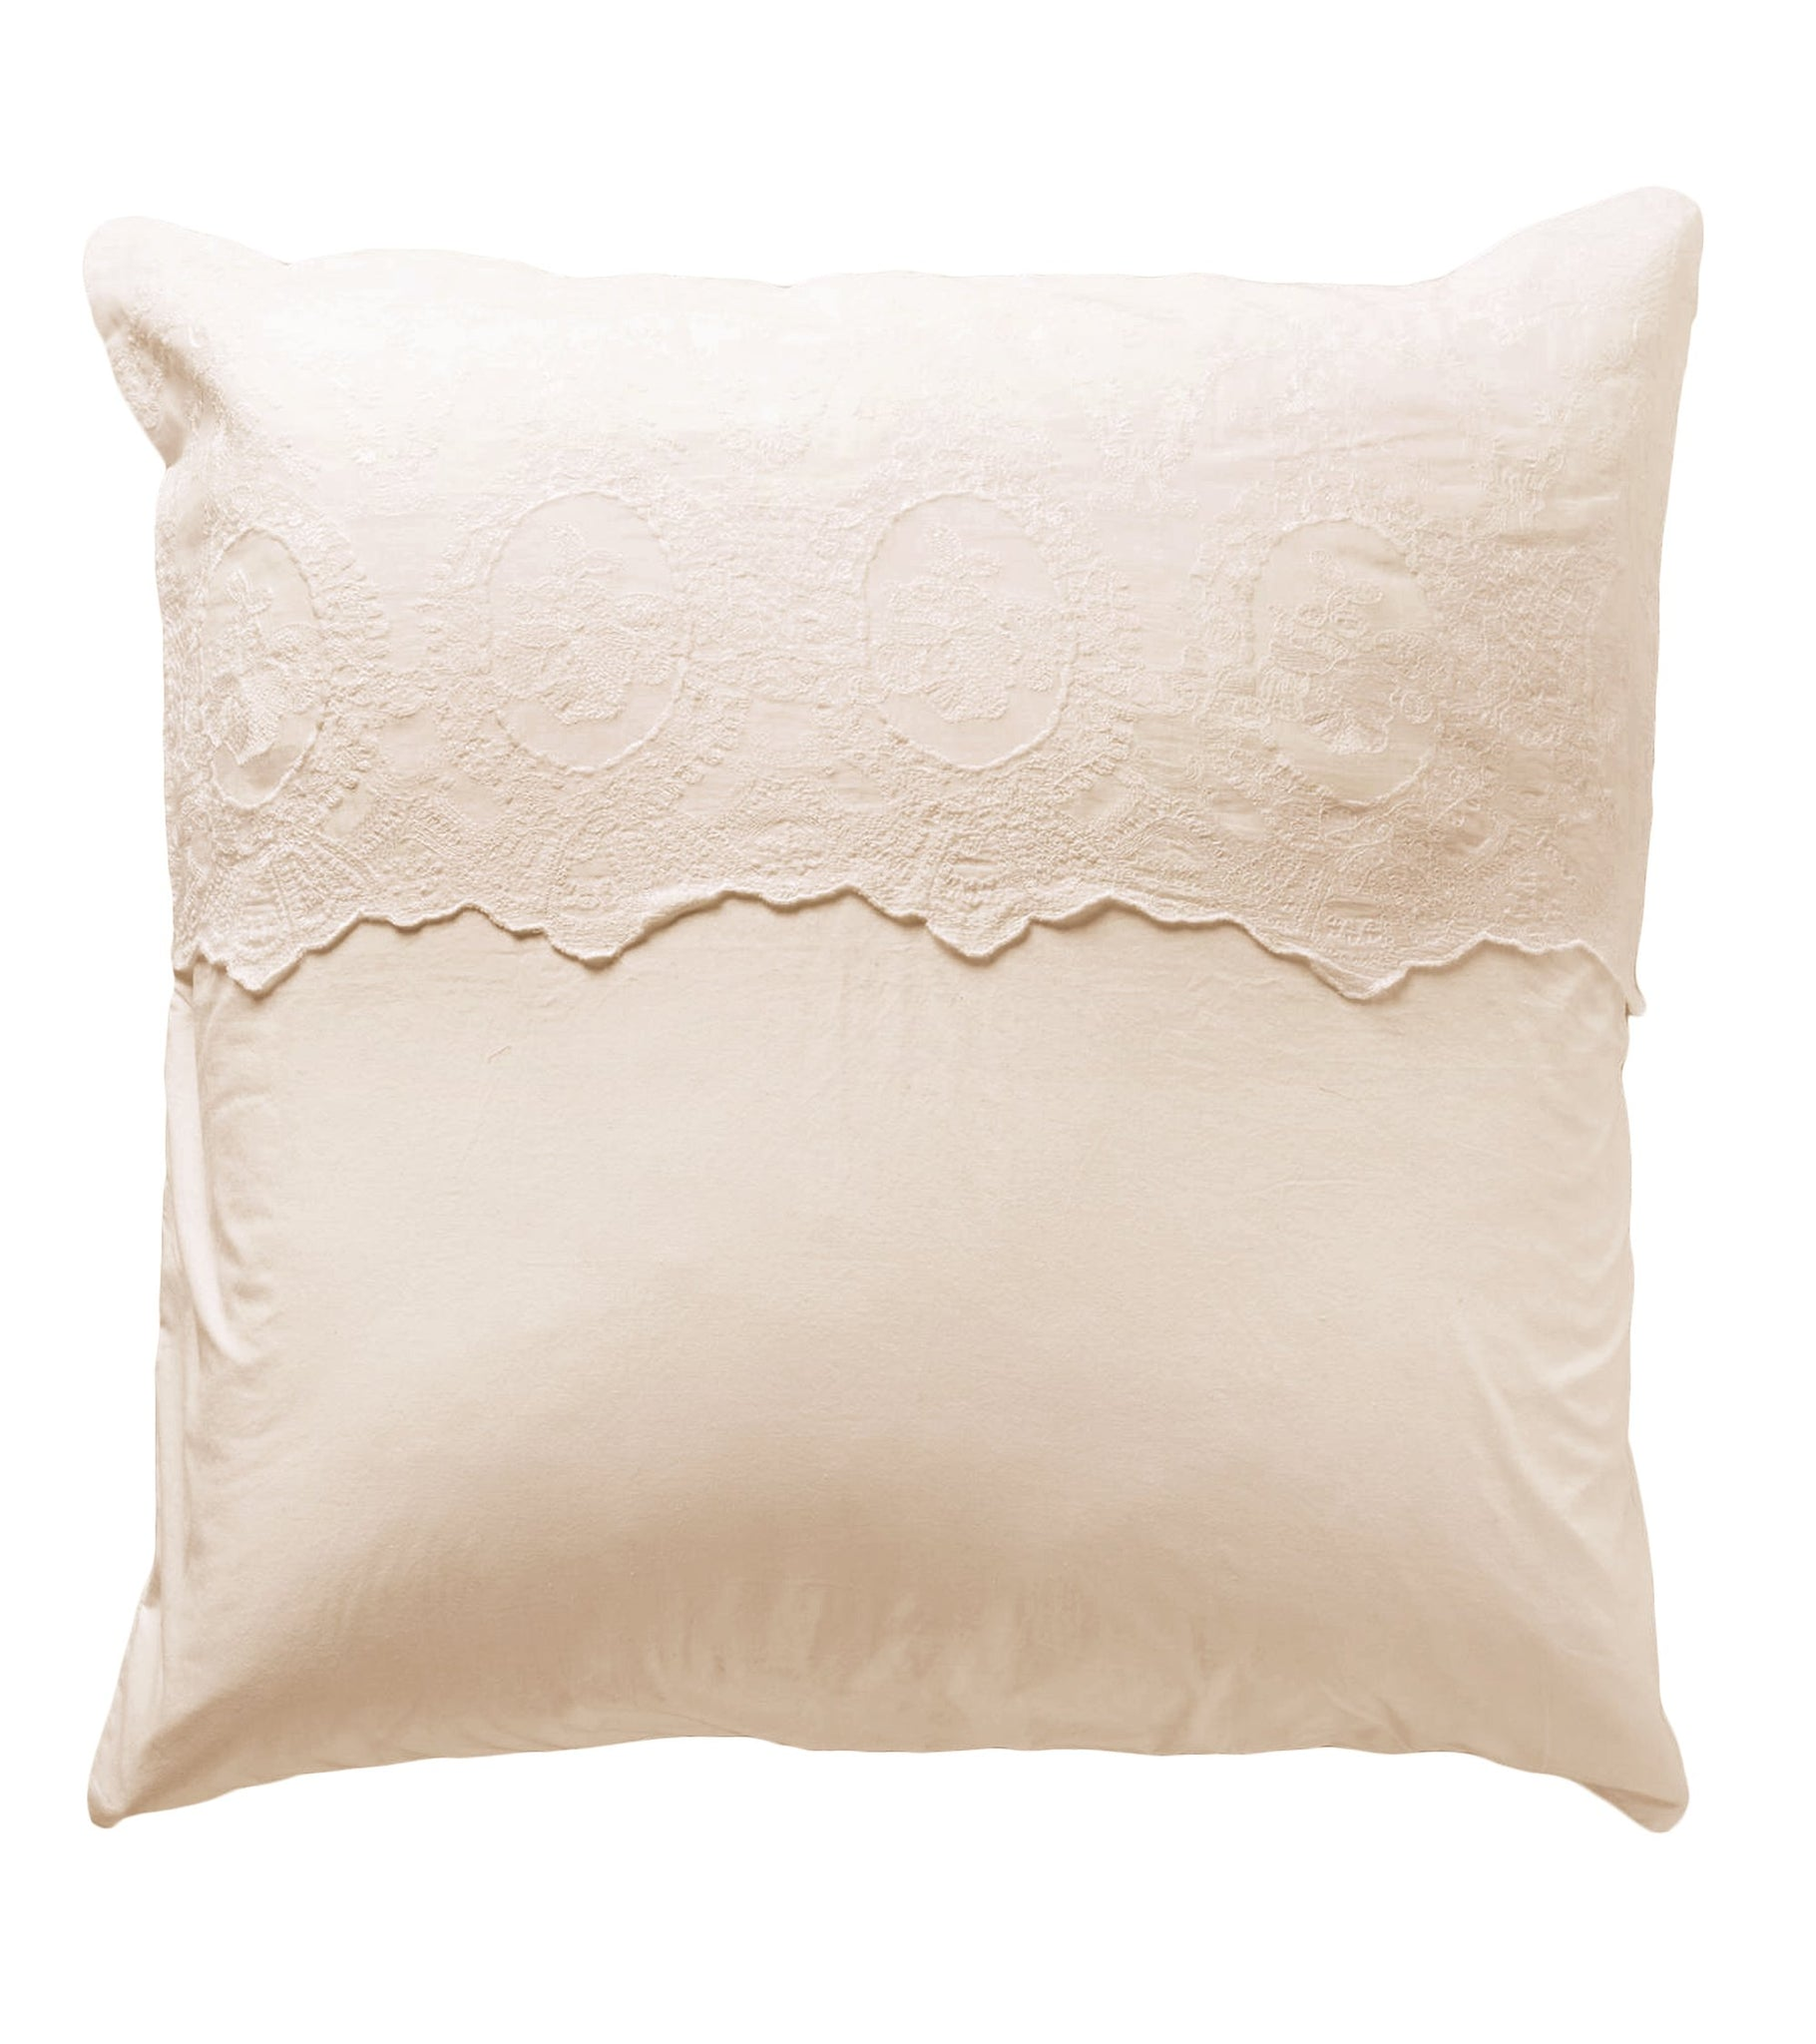 Grace Bedding Set in Pink Champagne design by Pom Pom at Home ...